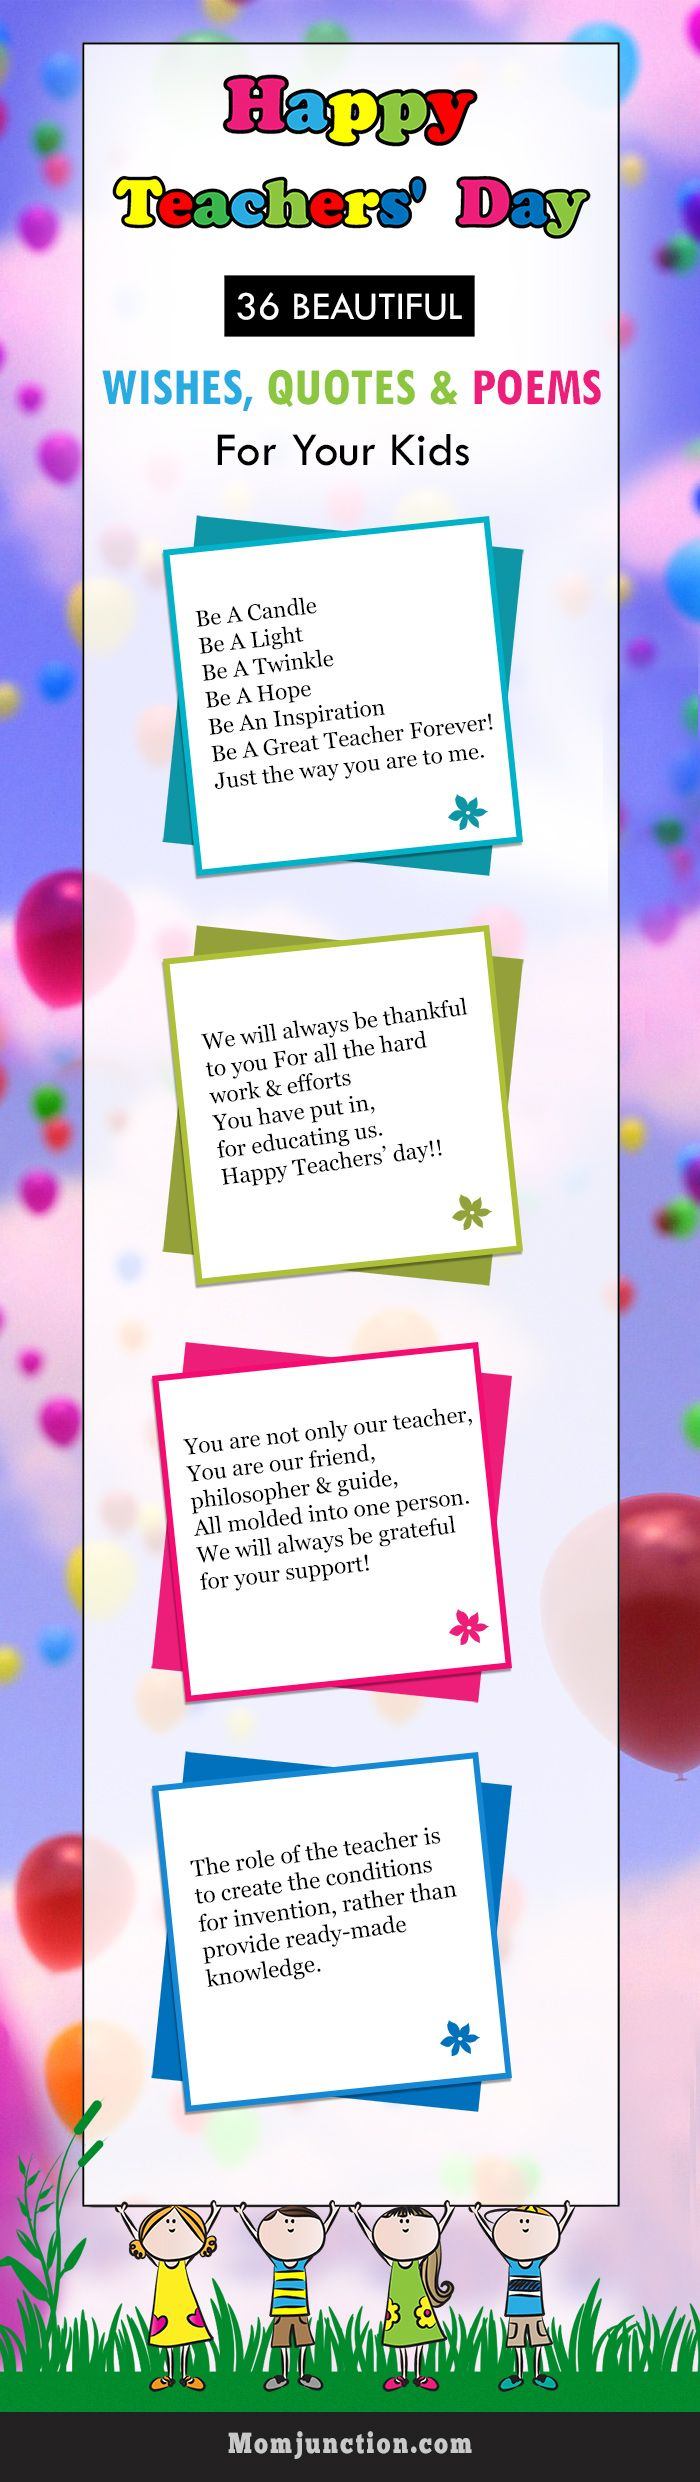 best ideas about happy teachers day wishes 17 best ideas about happy teachers day wishes teachers day wishes happy teachers day and teachers day greetings